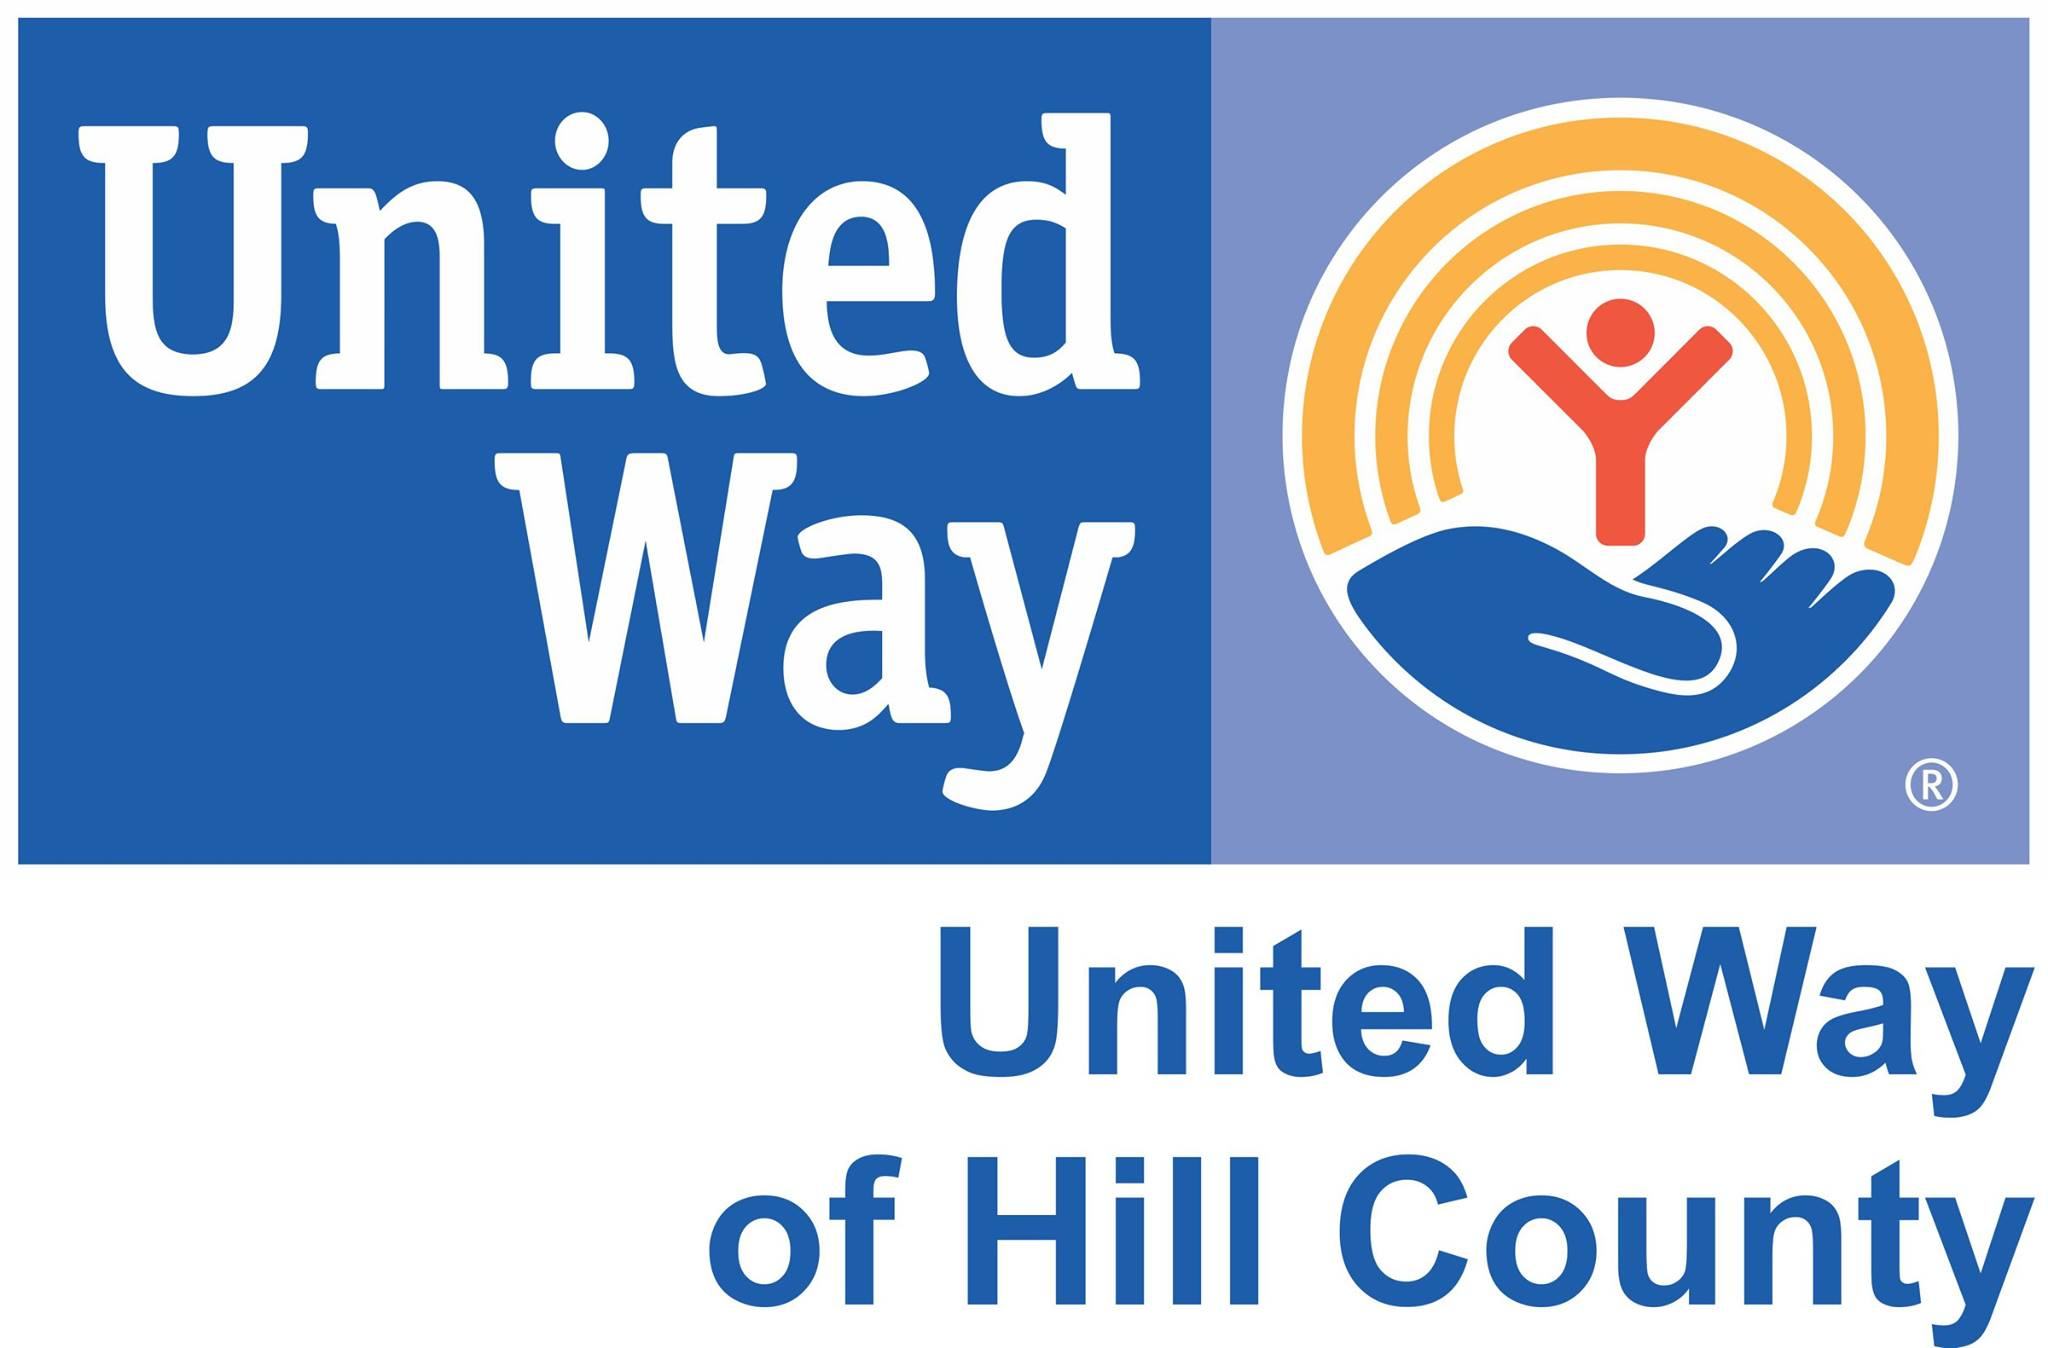 United Way of Hill County